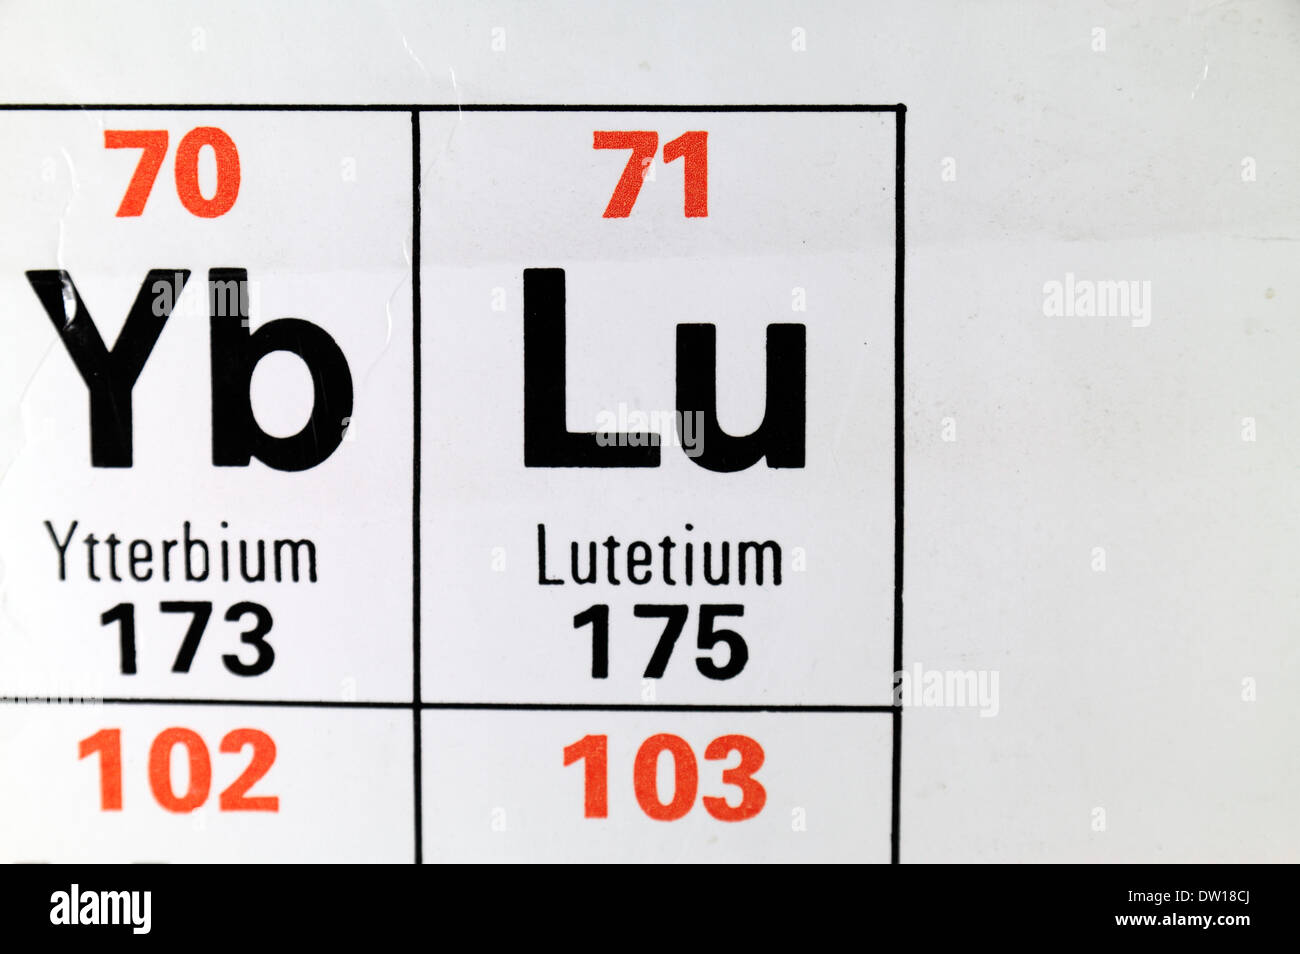 Periodic table yb choice image periodic table images ytterbium periodic table gallery periodic table images lanthanide periodic table images periodic table images lutetium lu gamestrikefo Images